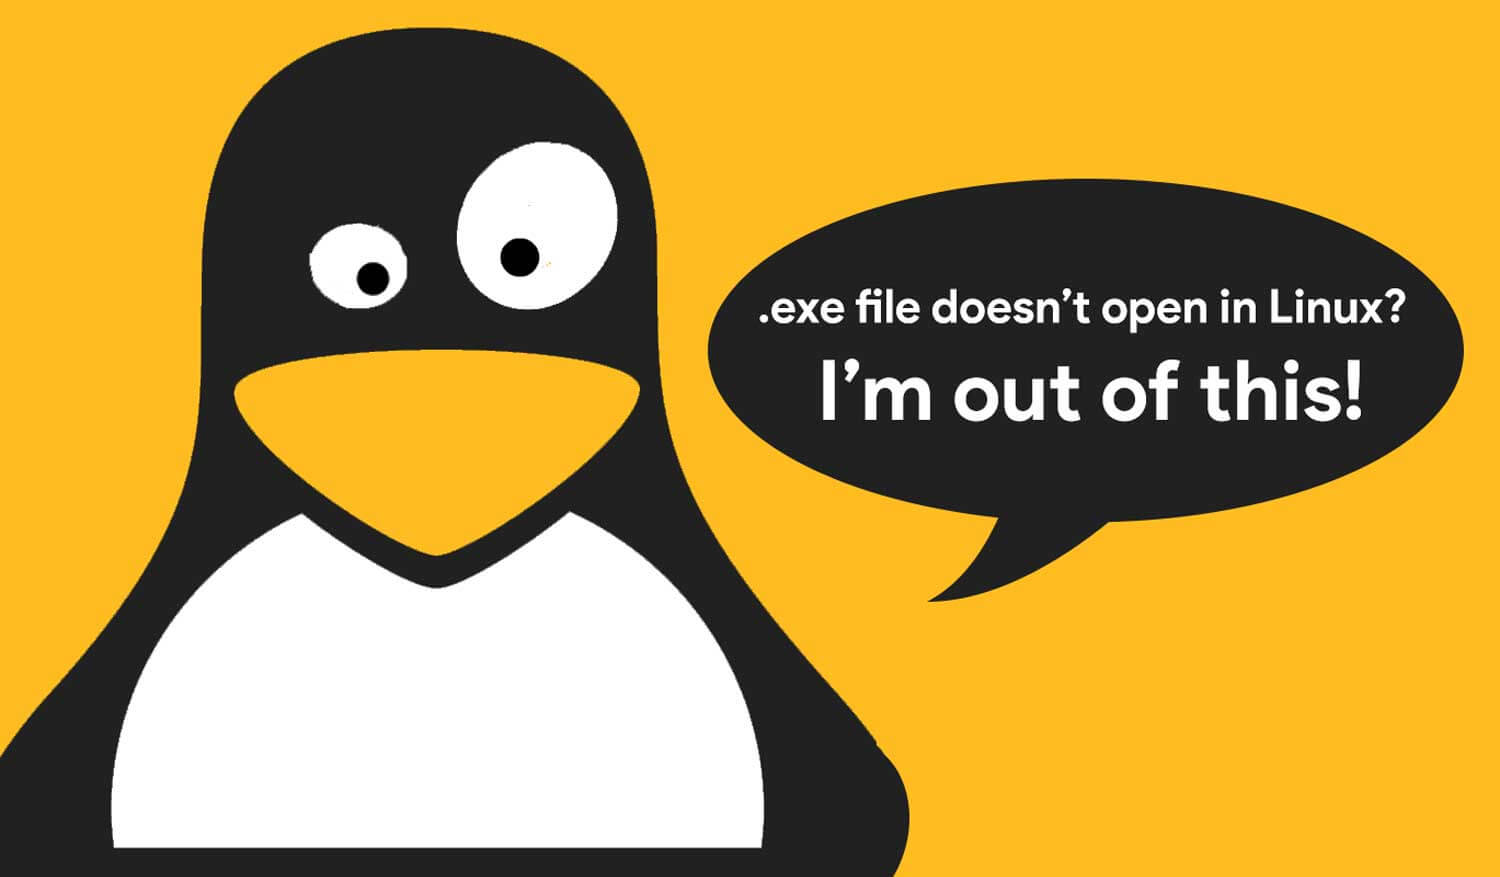 When .exe file doen't work in Linux OS